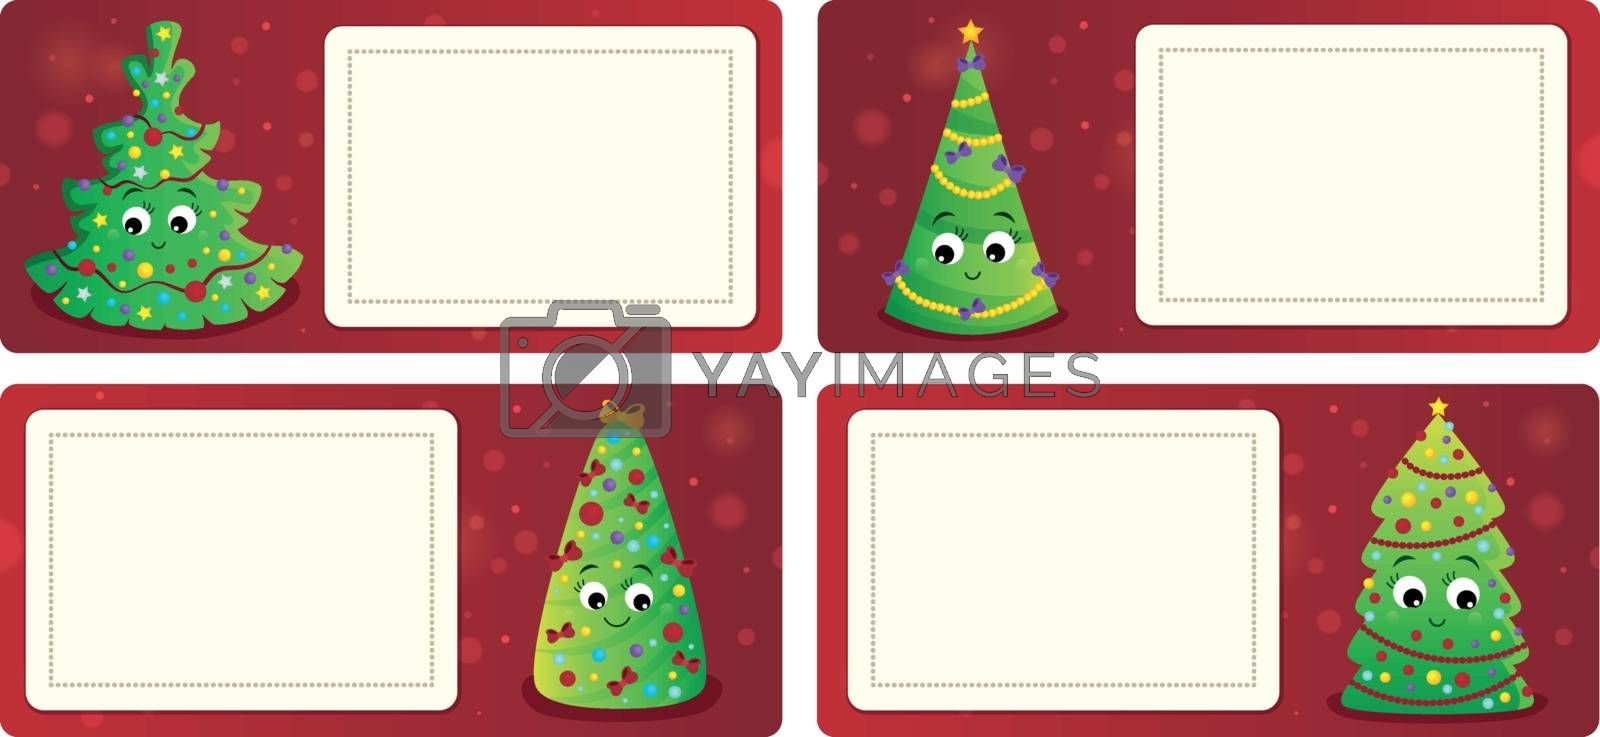 Stylized Christmas theme cards 1 - eps10 vector illustration.